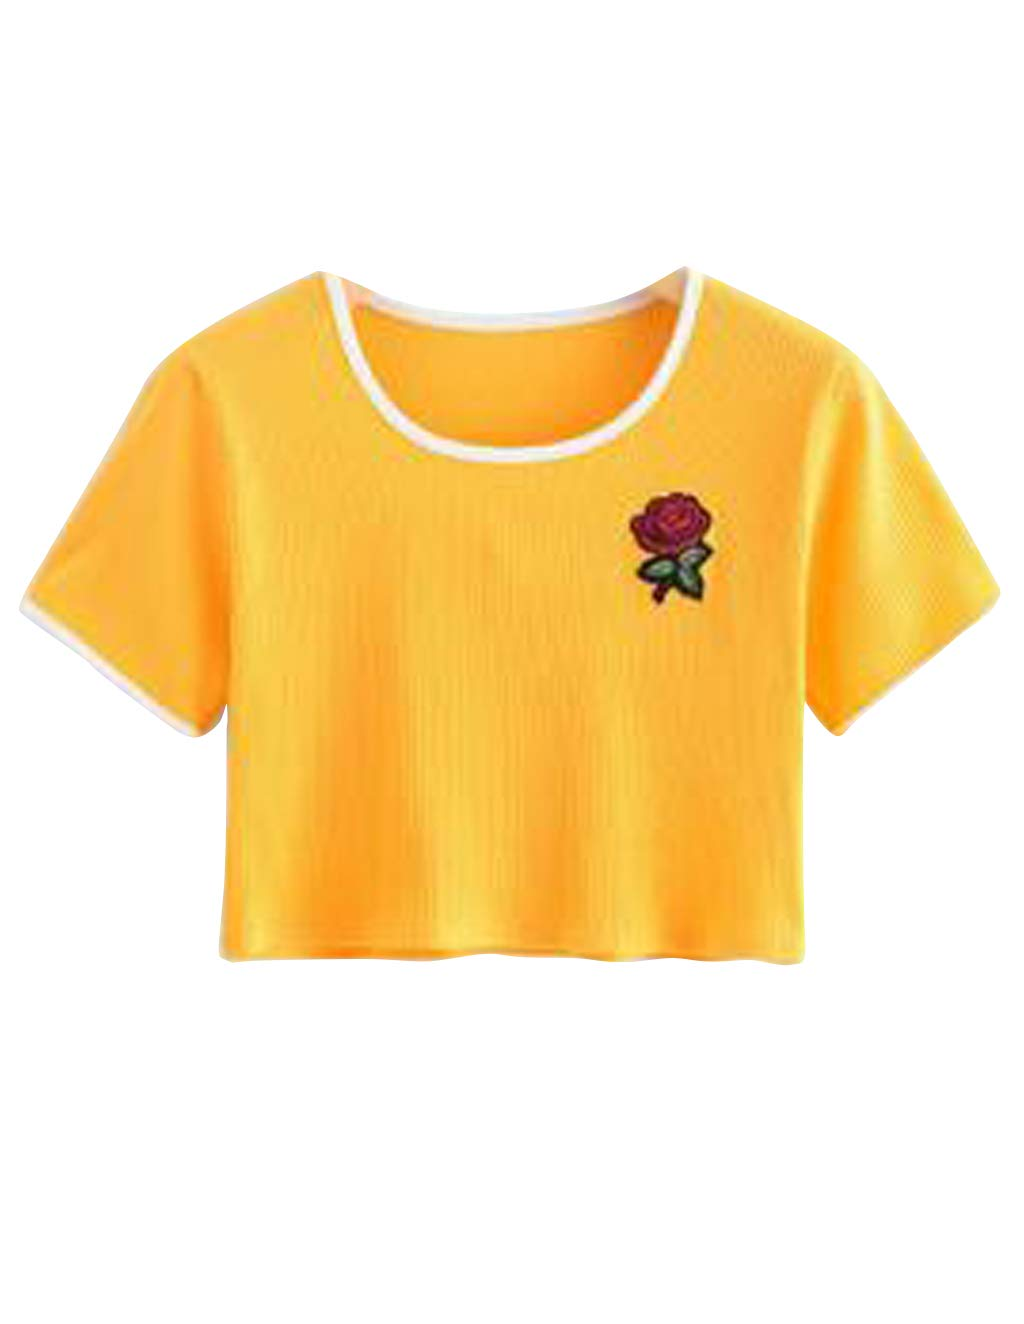 Women Teen Girls Rose Print Tie Up Crop Top Belly Shirt Tees T-Shirt Blouse Top Sale (Yellow, M) by SZT (Image #1)